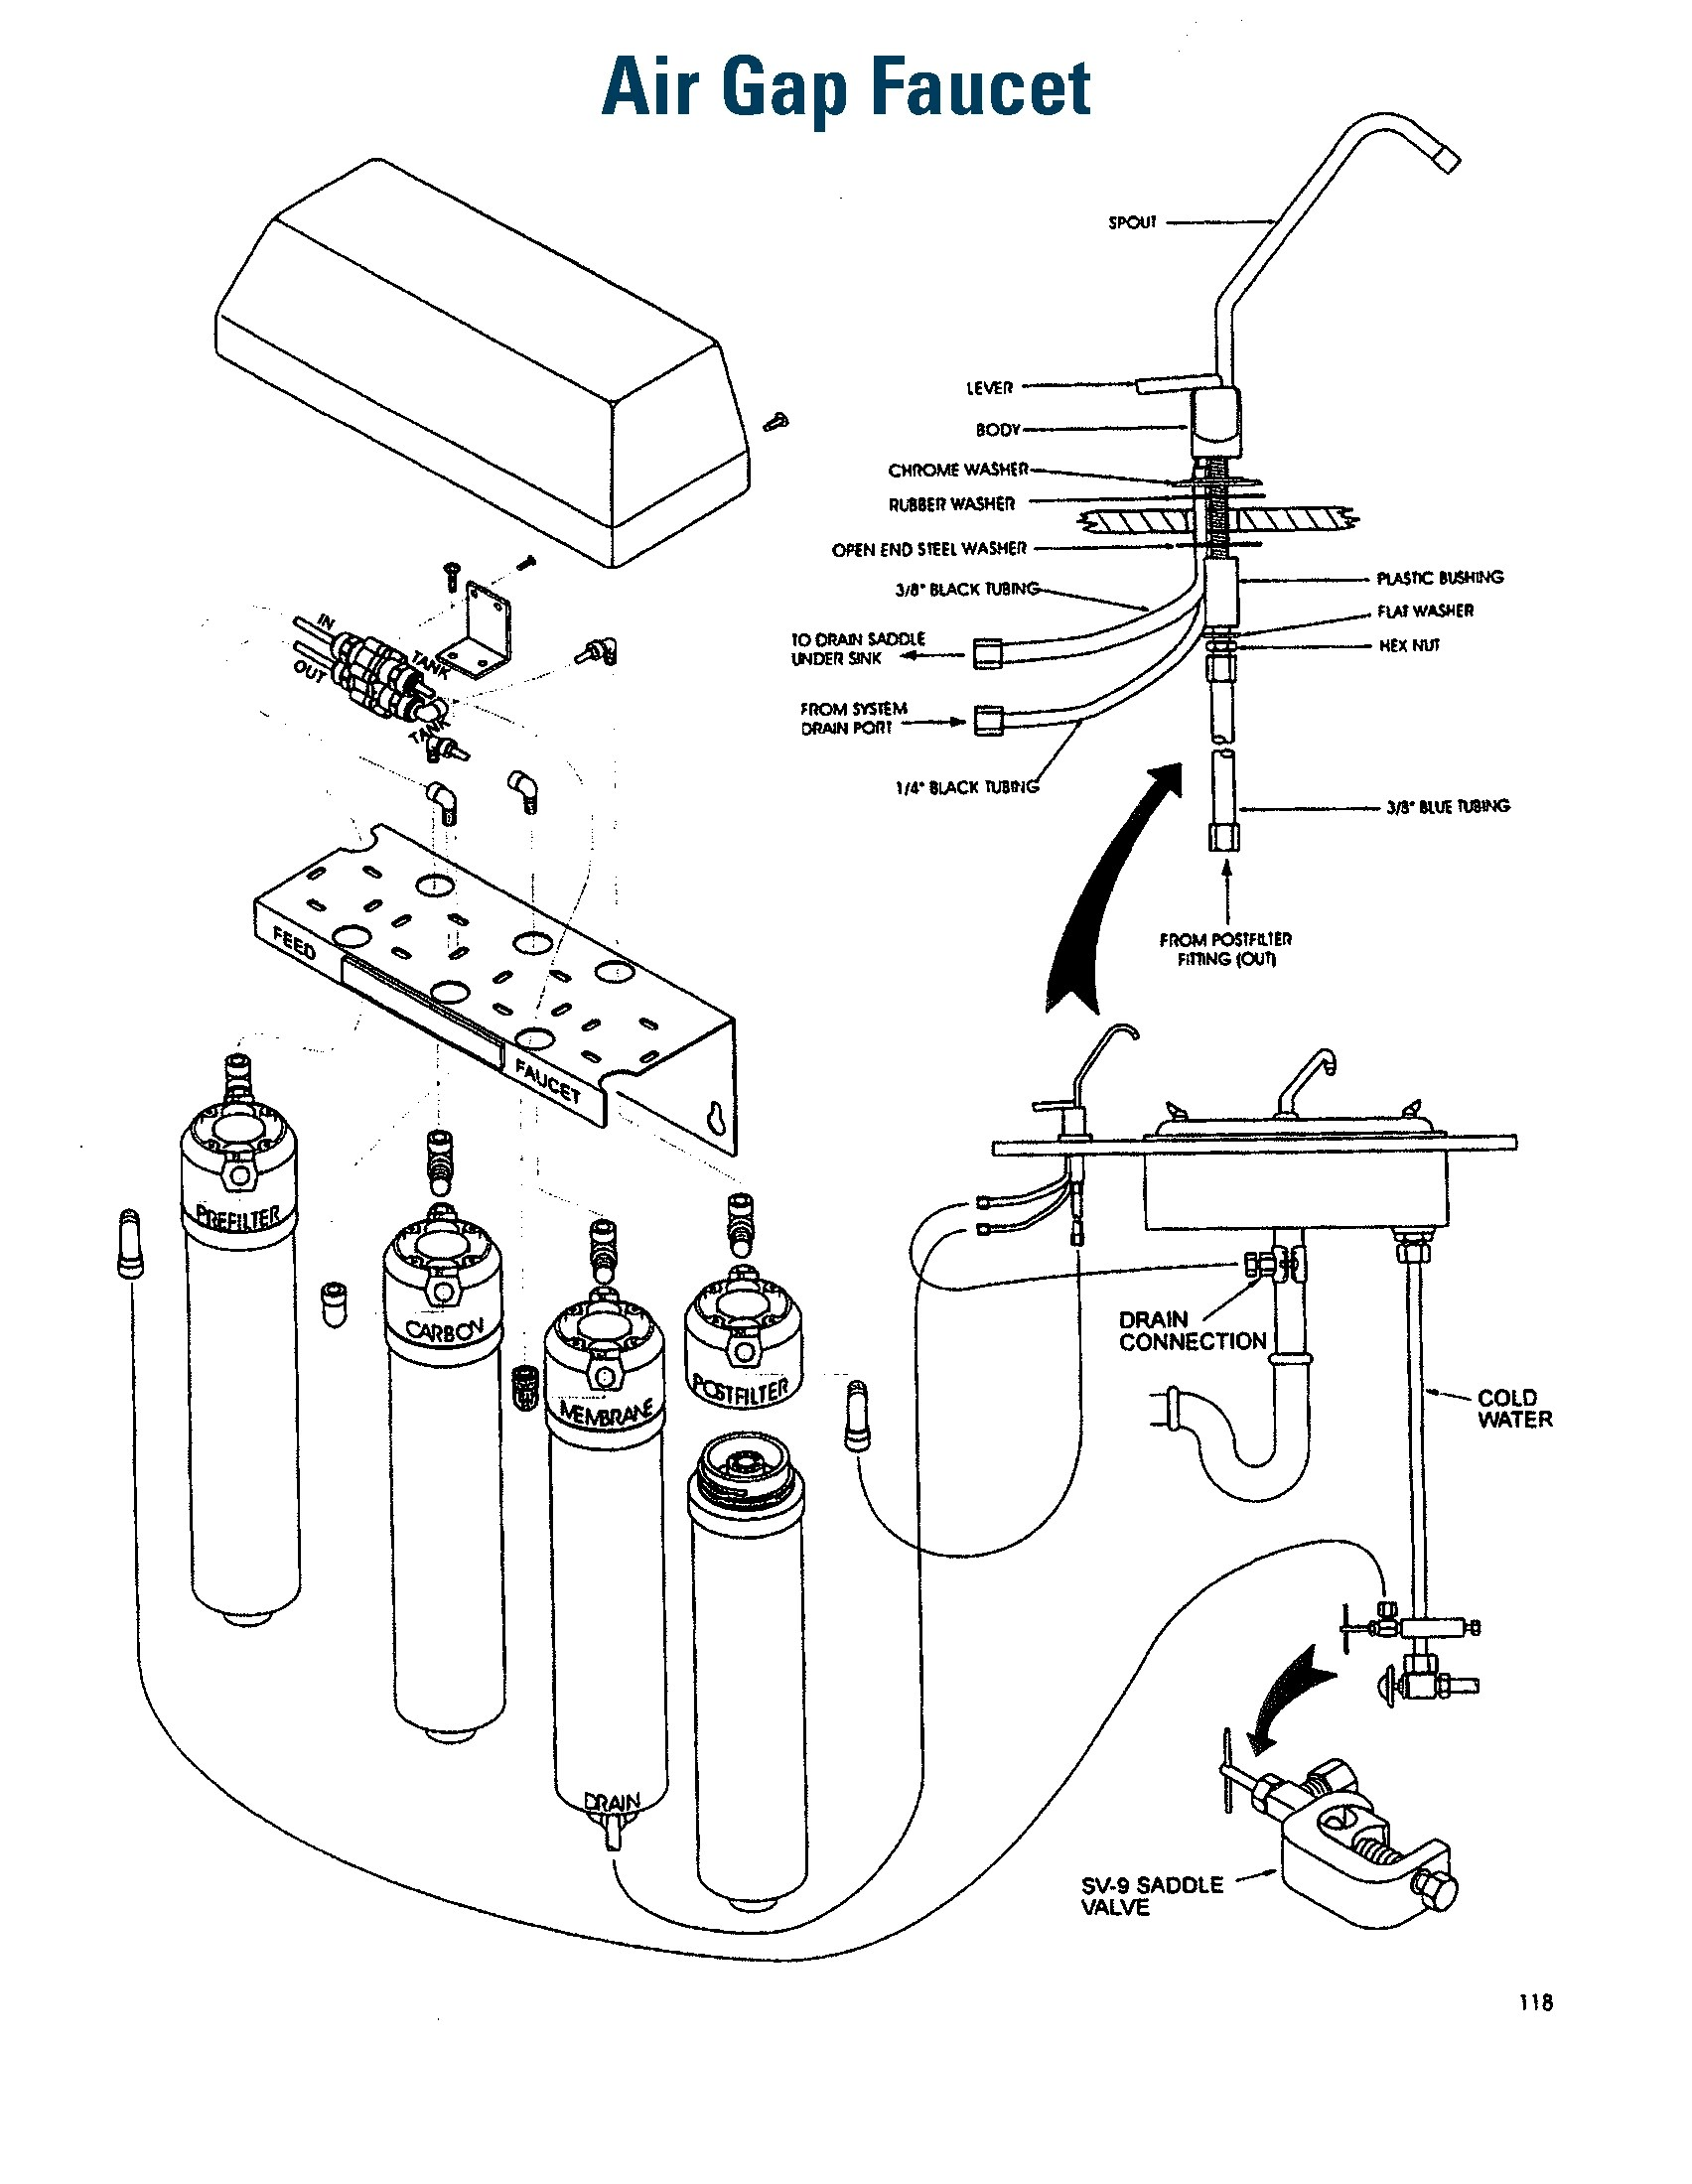 residential water softener hook up diagram 2007 jeep patriot headlight wiring air gap vs non faucet esp products